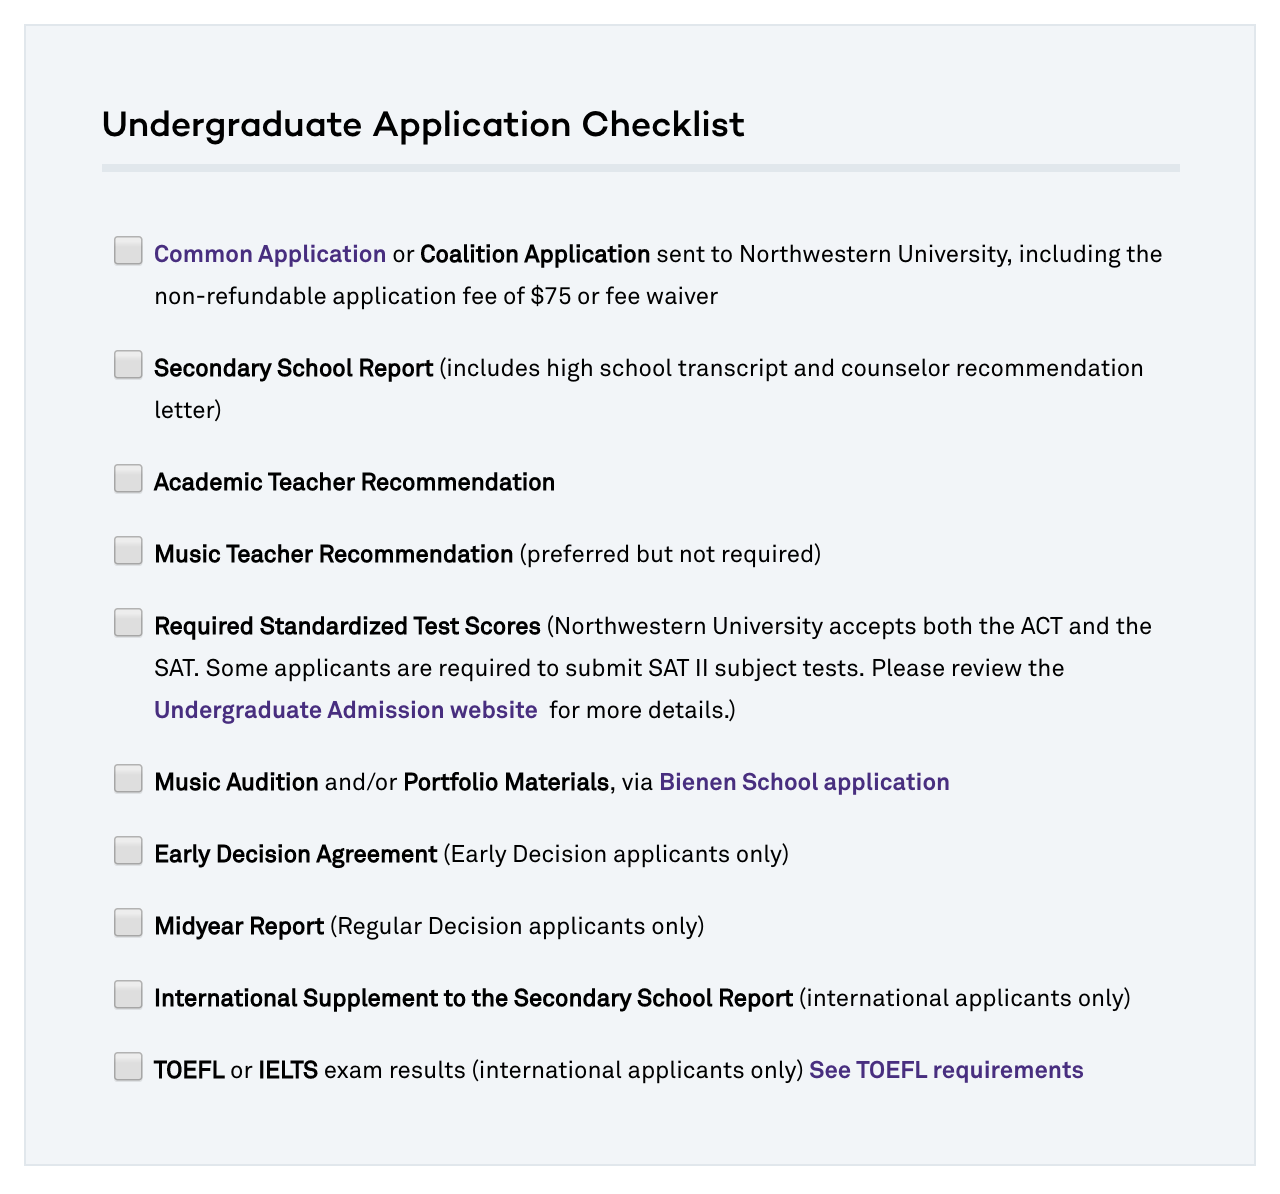 Undergraduate Application Checklist with click-able boxes